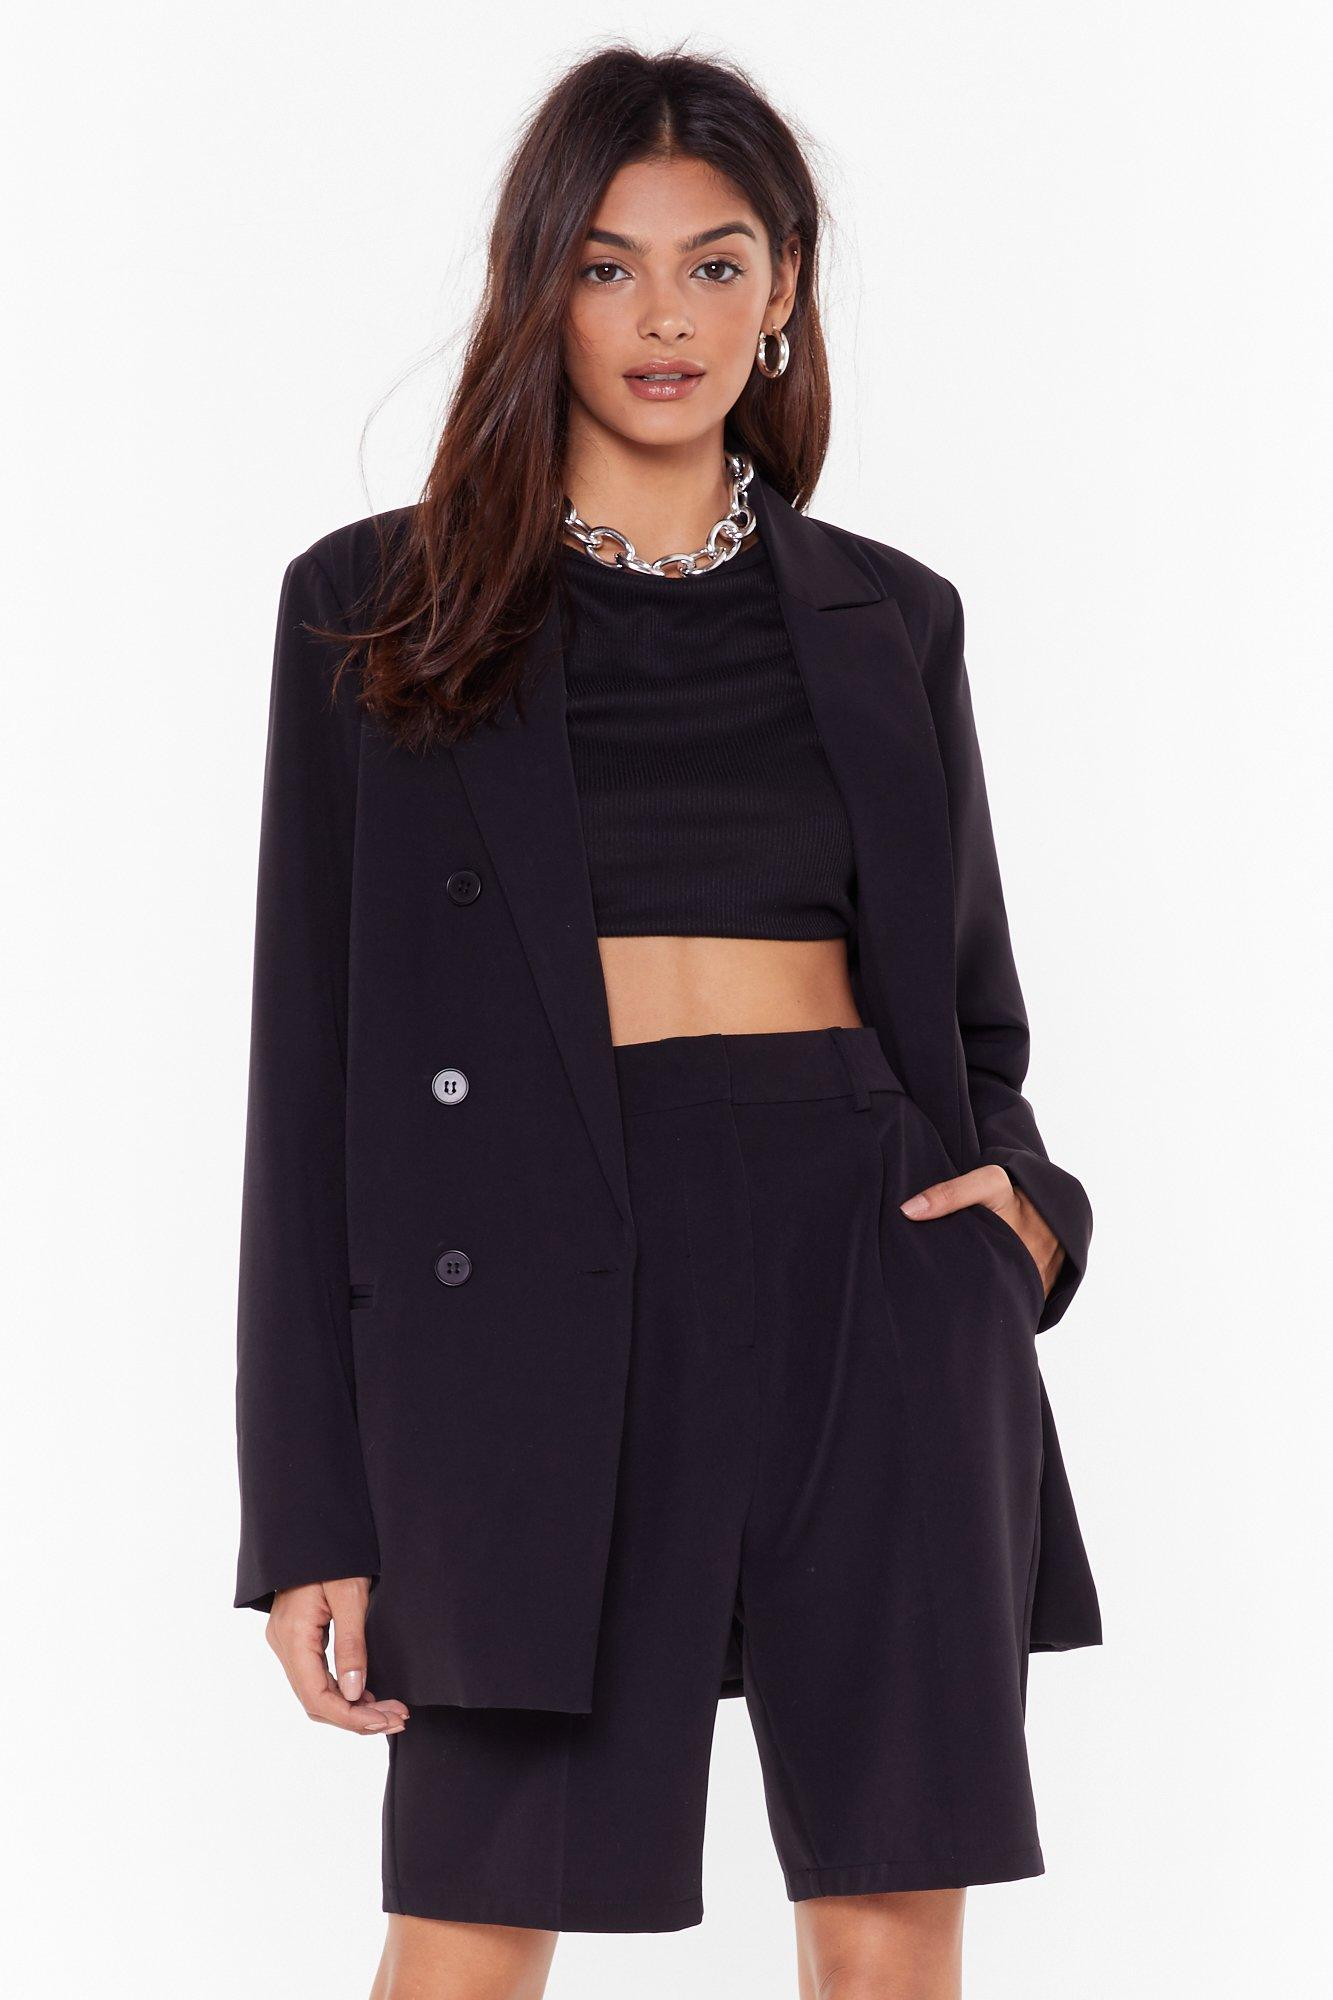 Image of Let's Talk Business Double Breasted Blazer